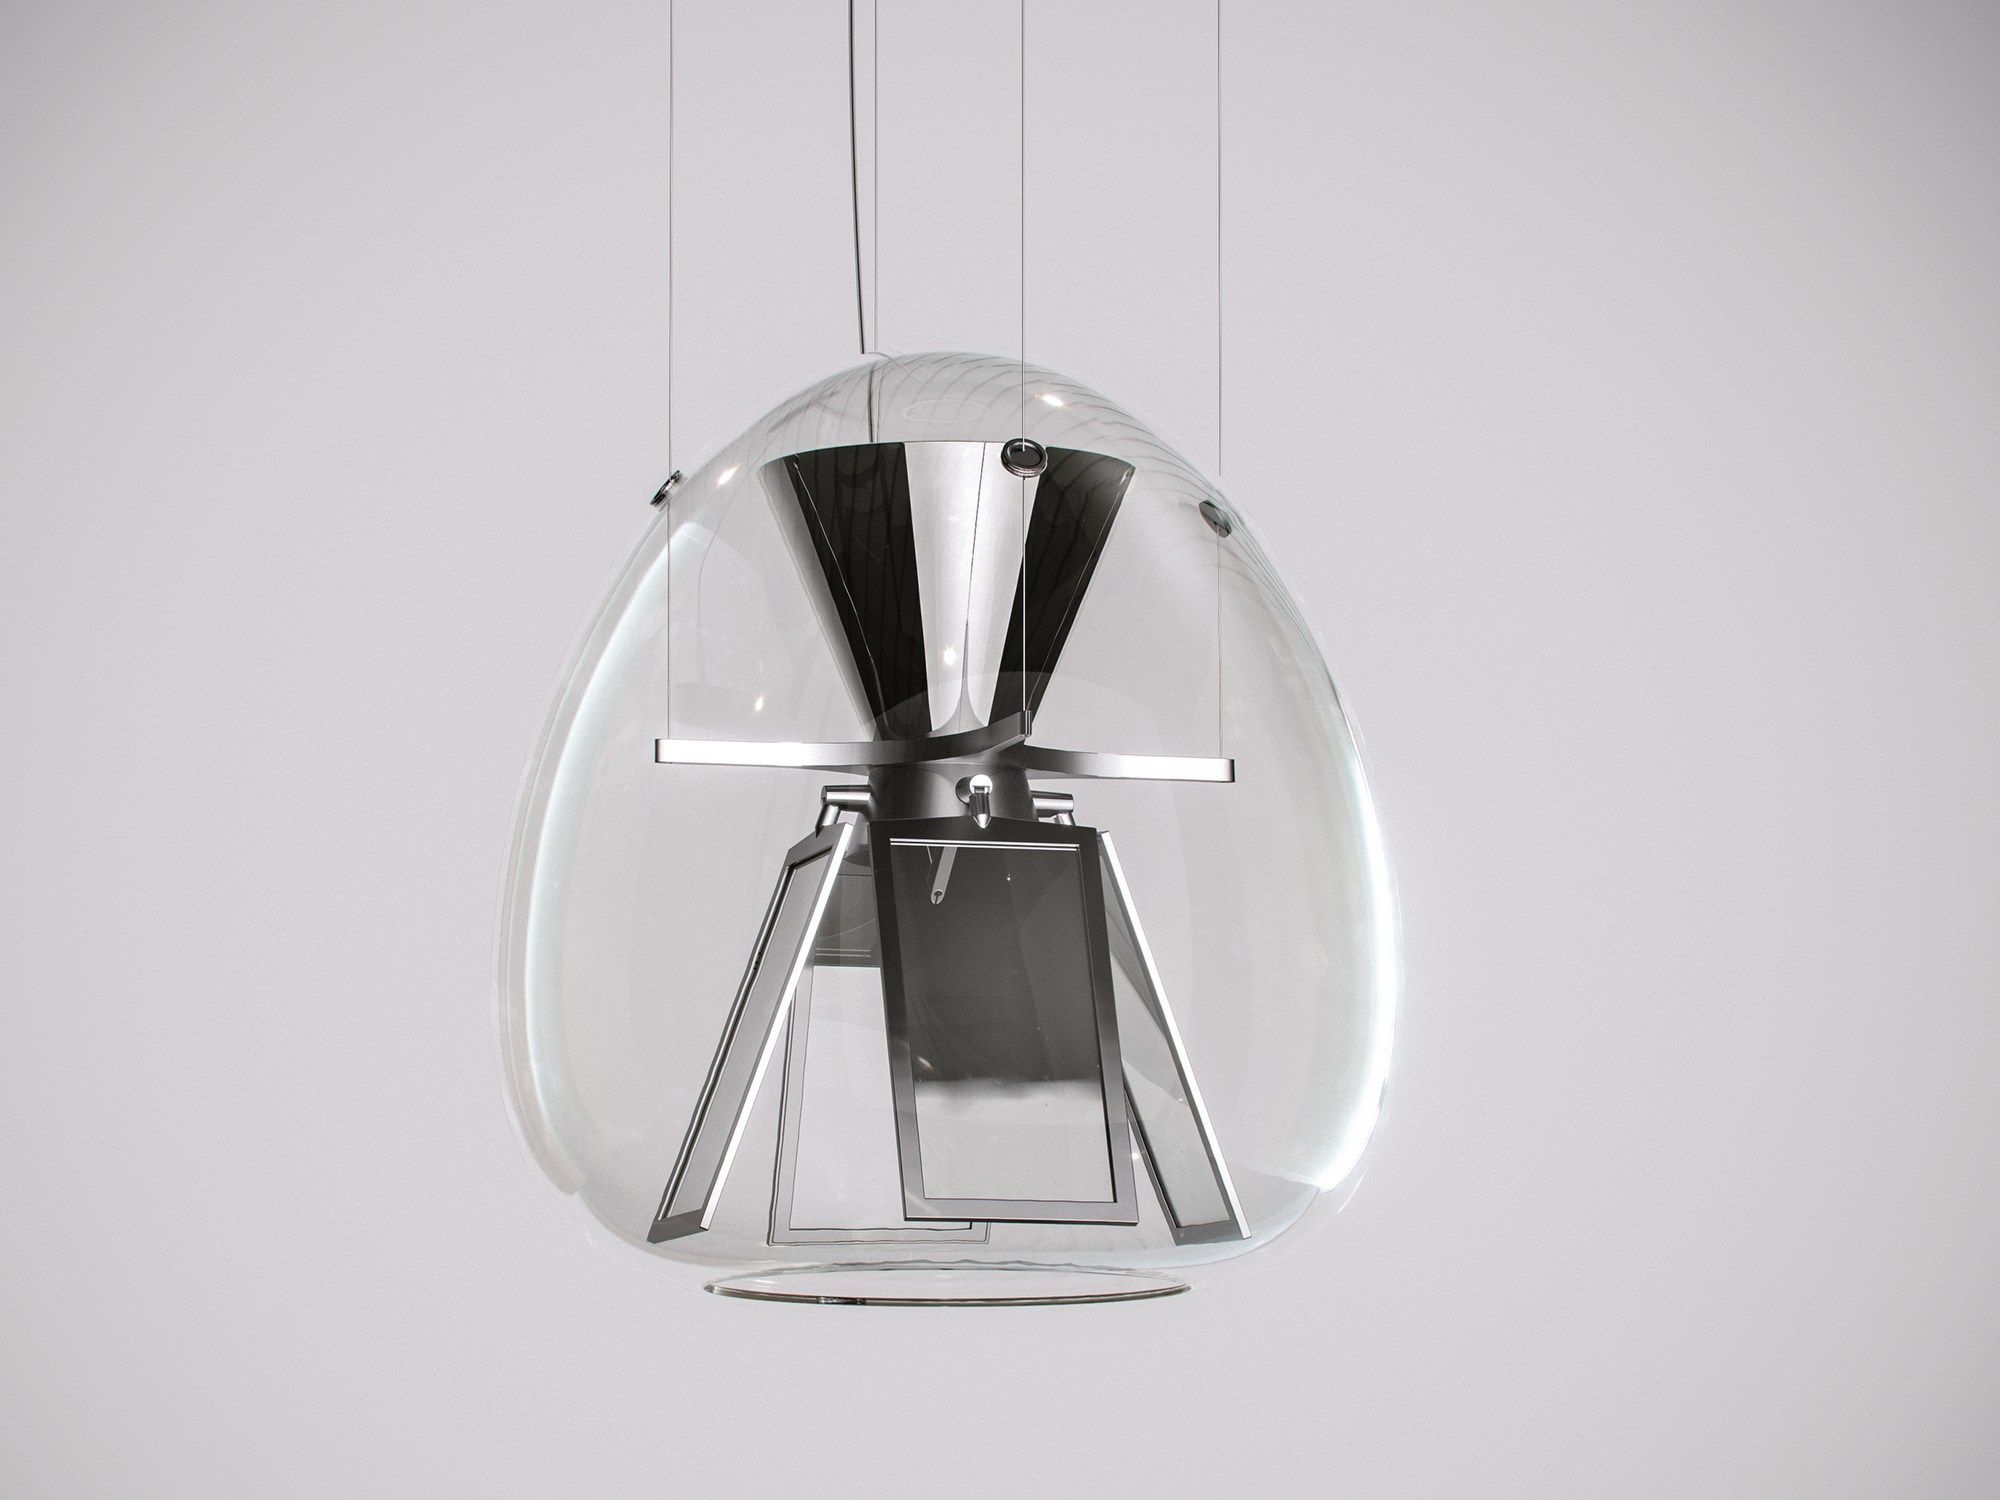 Harry h | Design Products | Naoto fukasawa, Ceiling Lights e Lighting